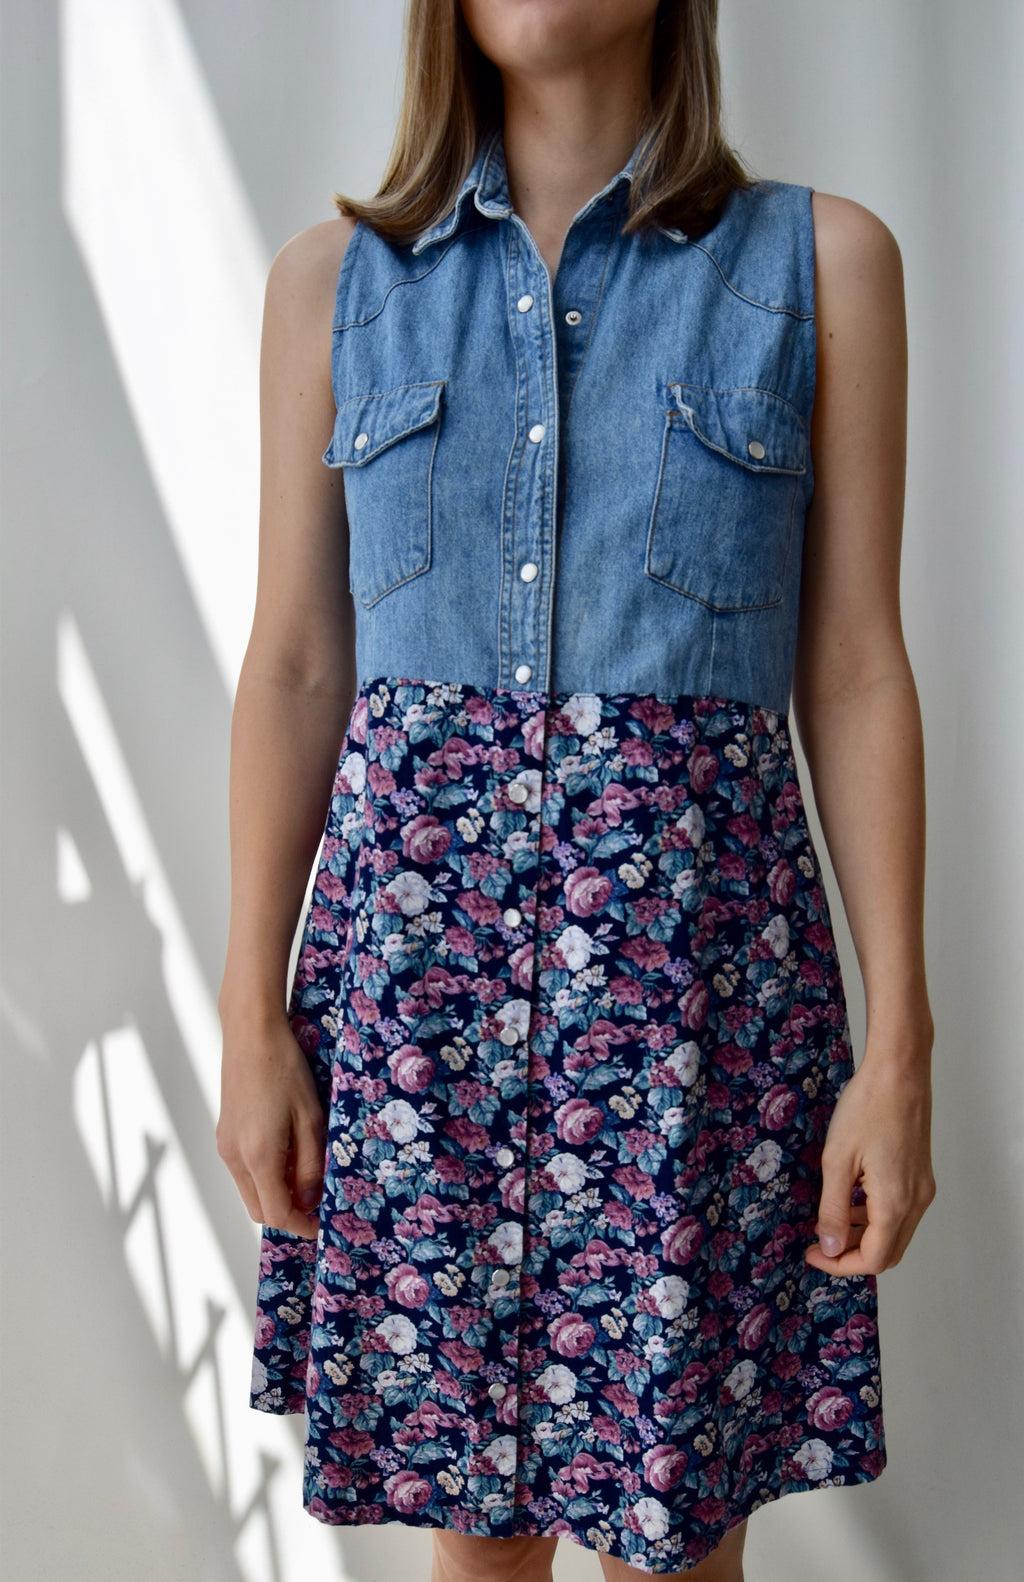 90's Denim Floral Dress